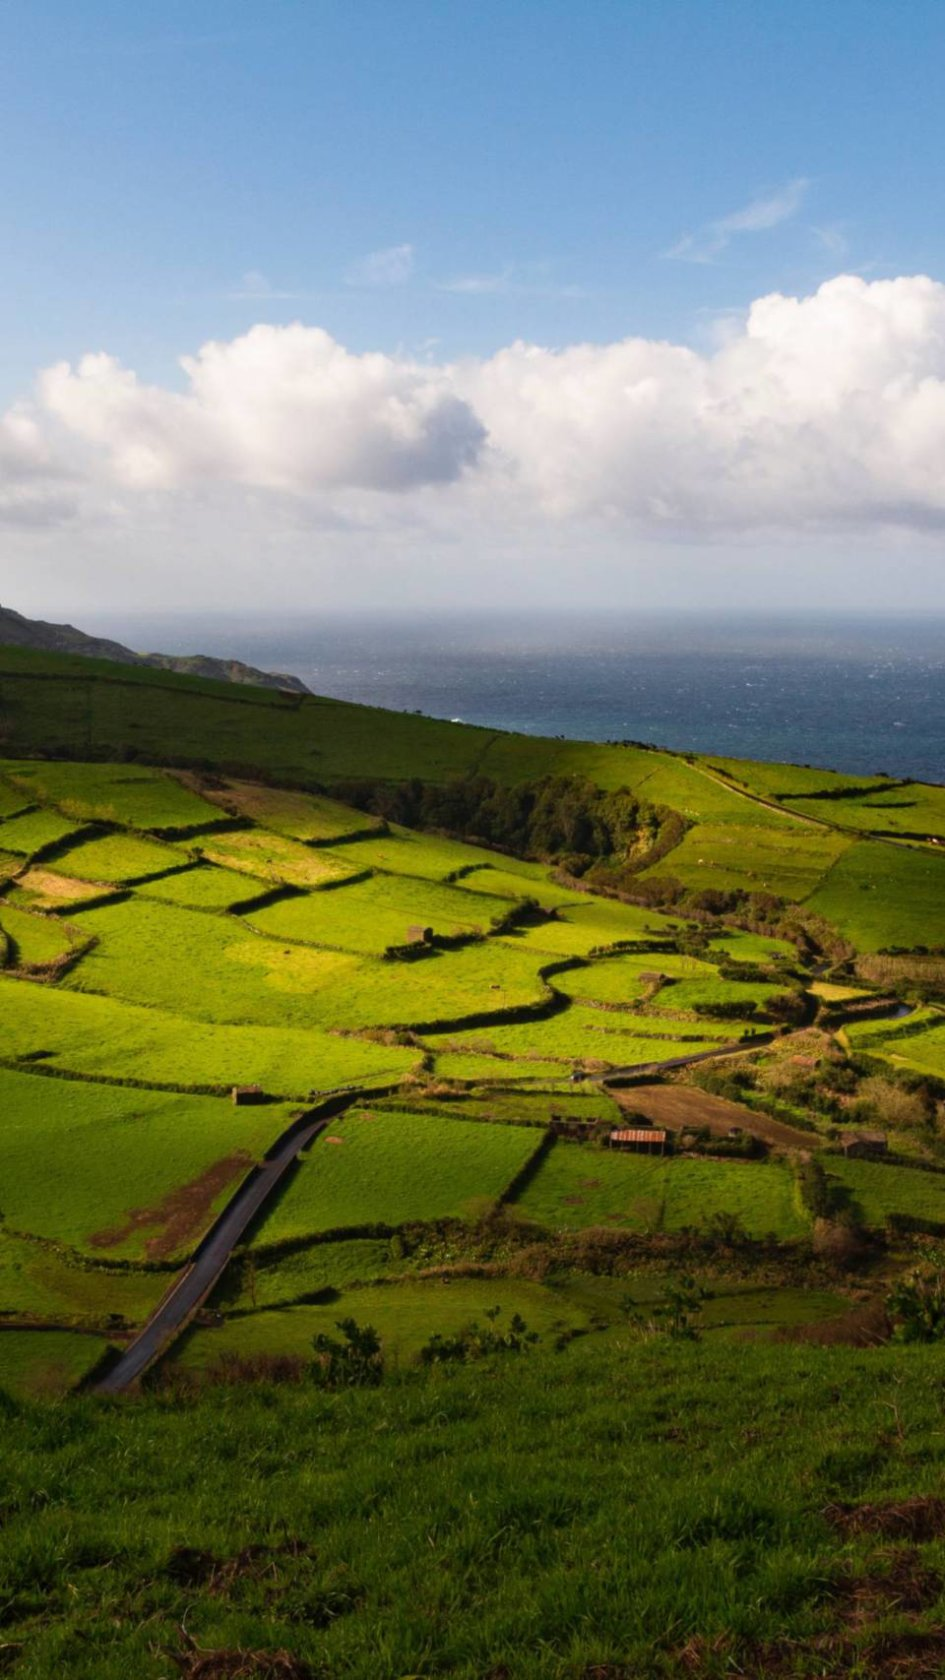 A landscape shot of the vineyards on the Azores island Pico